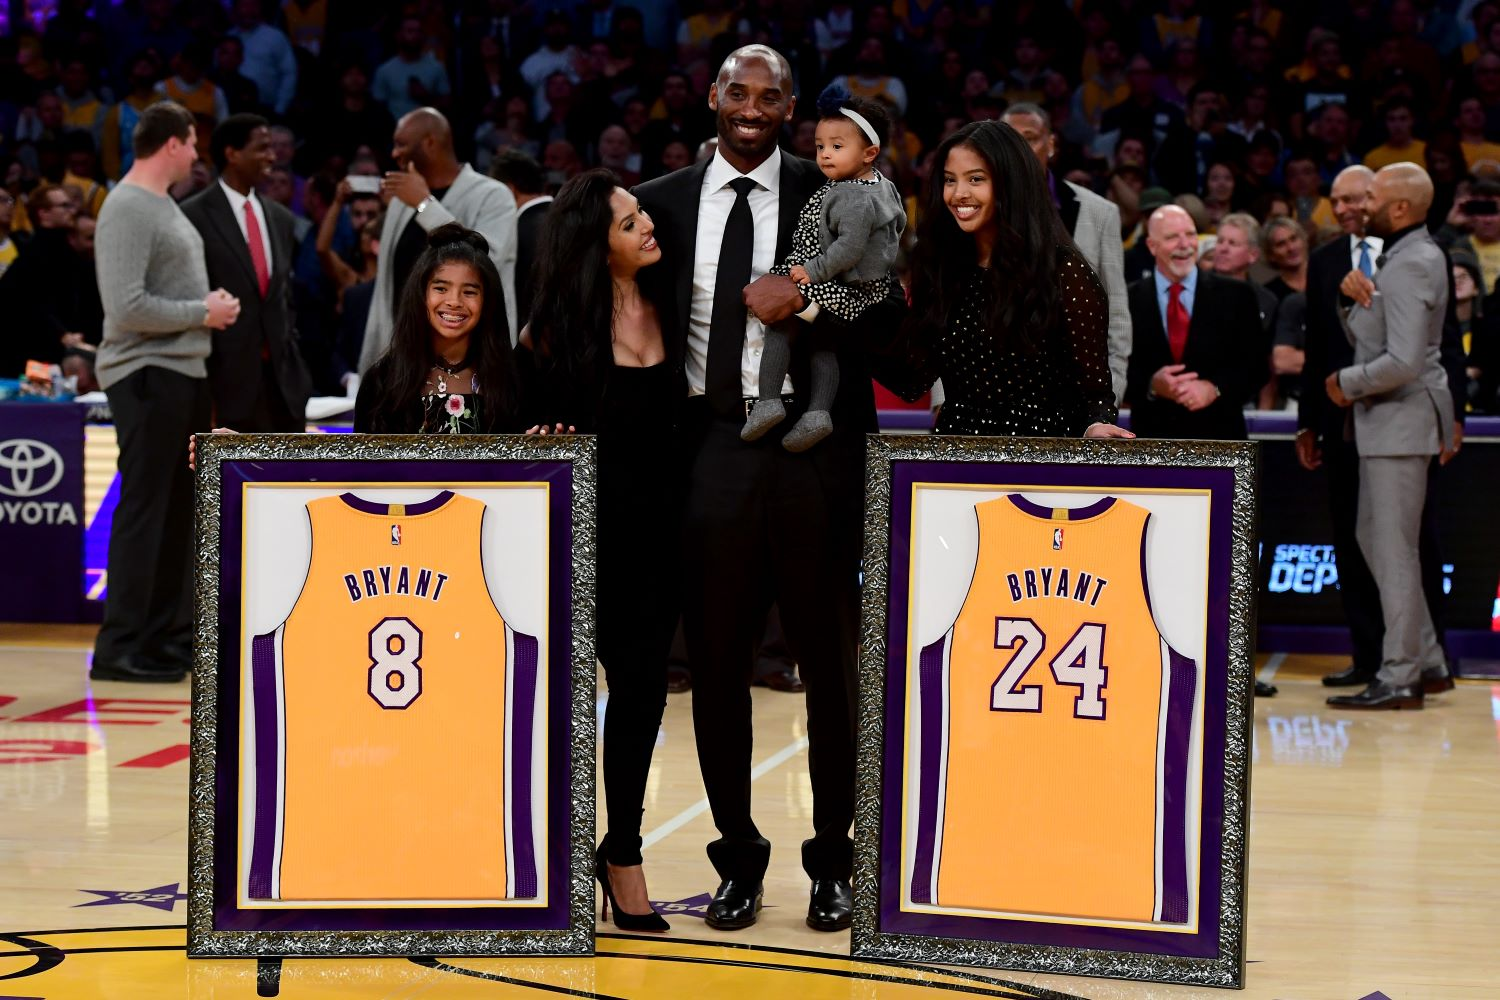 Vanessa Bryant paid homage to her late husband Kobe Bryant on Friday by posting a heartfelt message honoring the three-year anniversary of his jersey retirement.